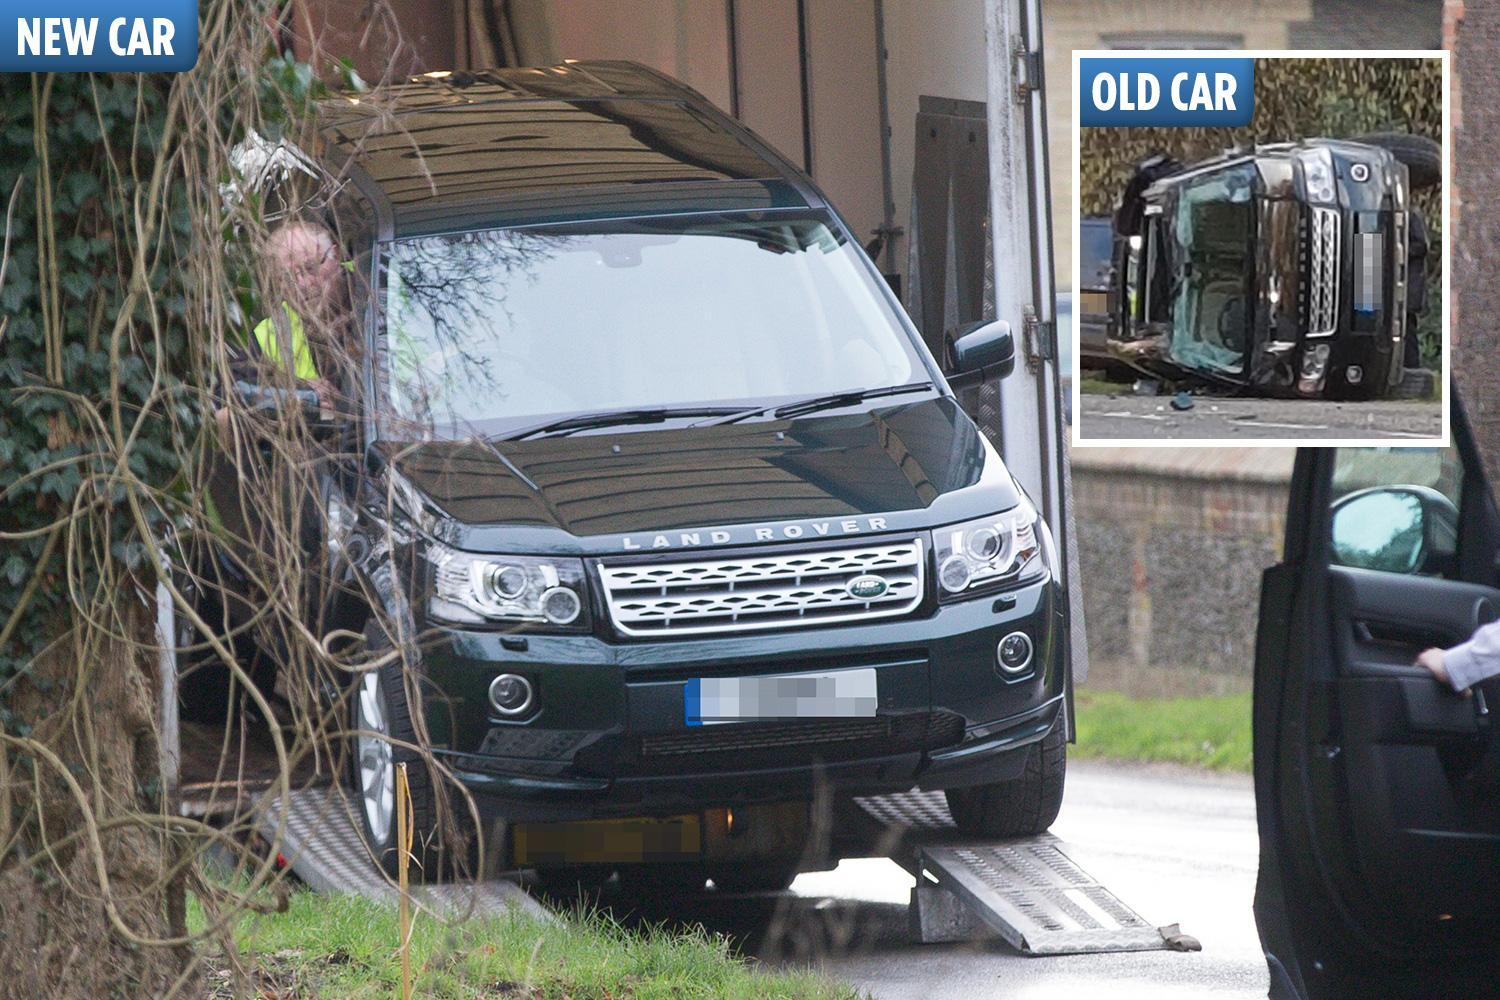 Prince Philip has top-of-the-range £68k Land Rover delivered to Sandringham just hours after nasty crash